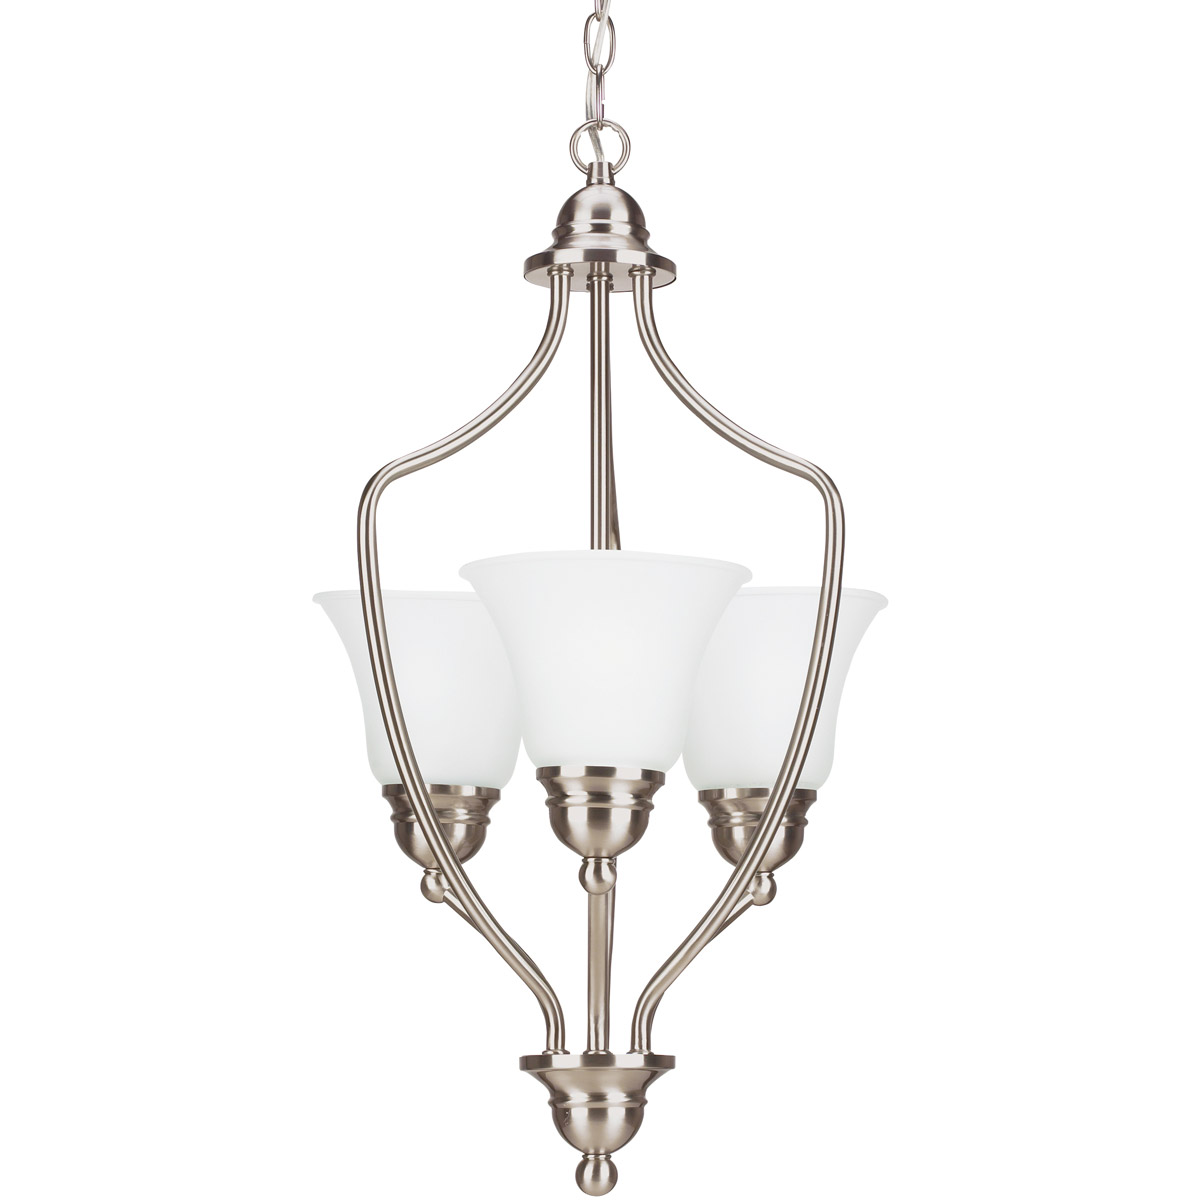 Sea Gull Lighting Signature 3 Light Foyer Pendant in Brushed Nickel 51410-962 photo